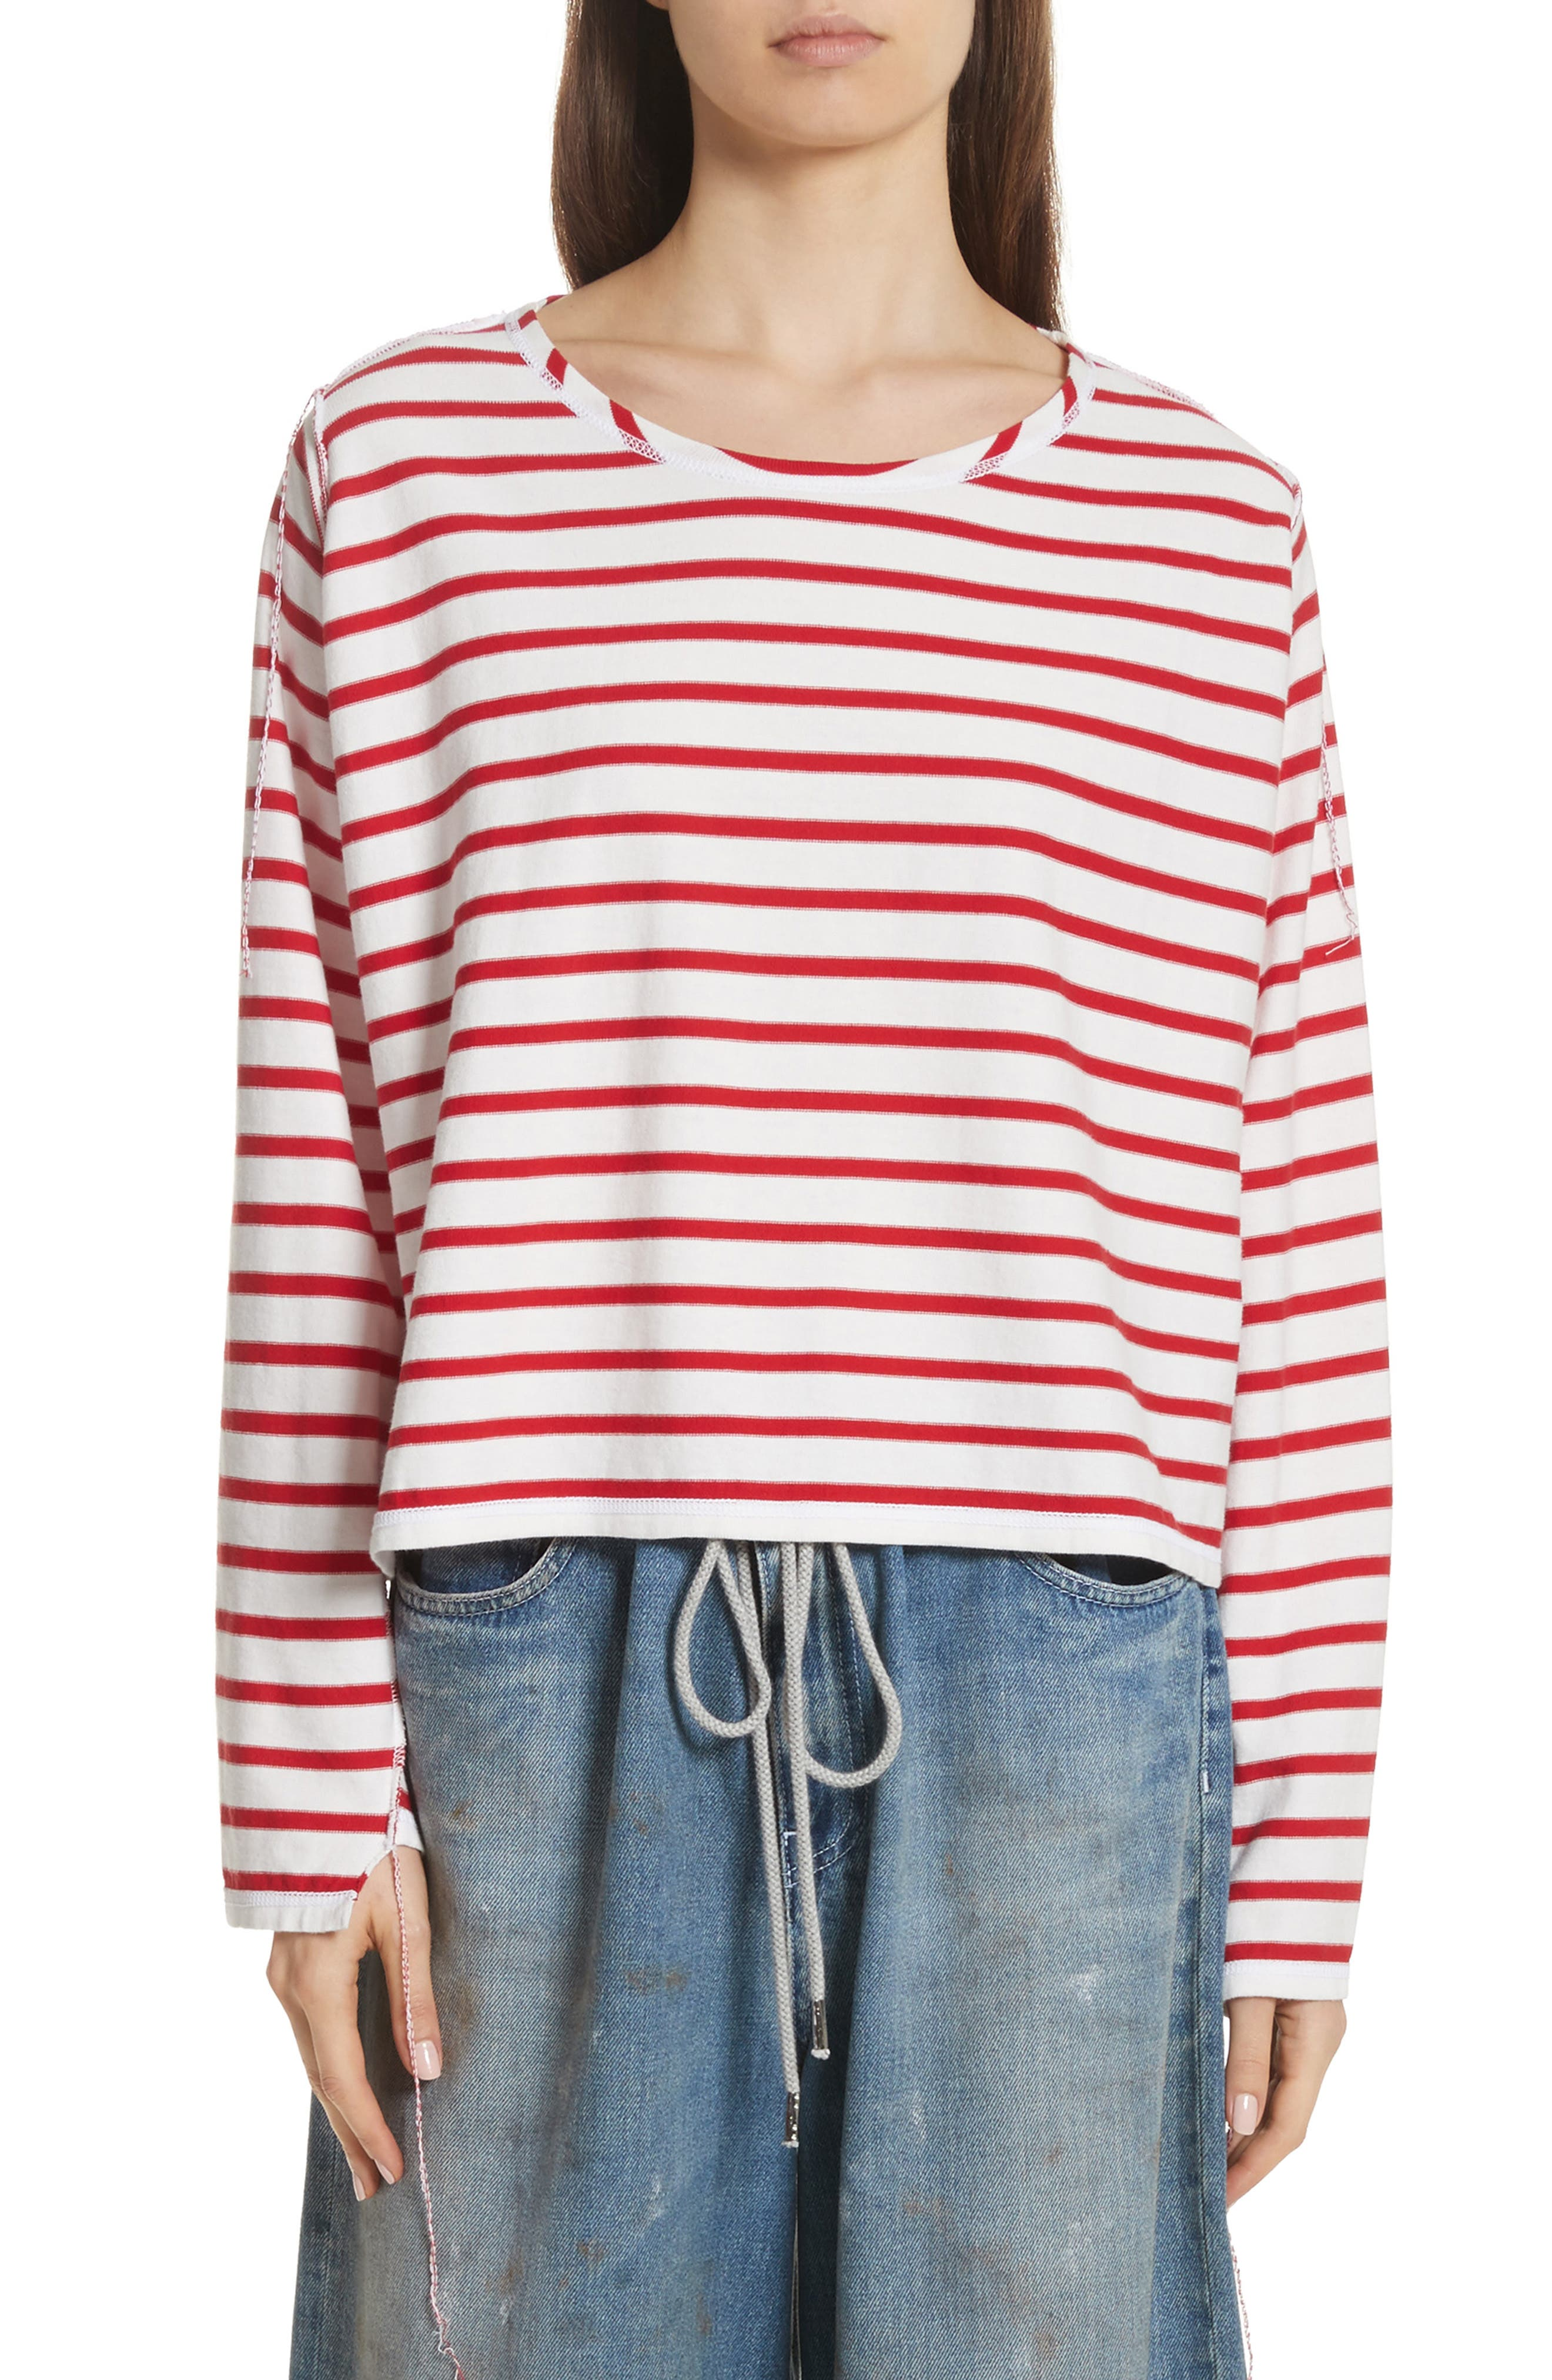 Inside Out Stripe Sweater,                             Main thumbnail 1, color,                             600